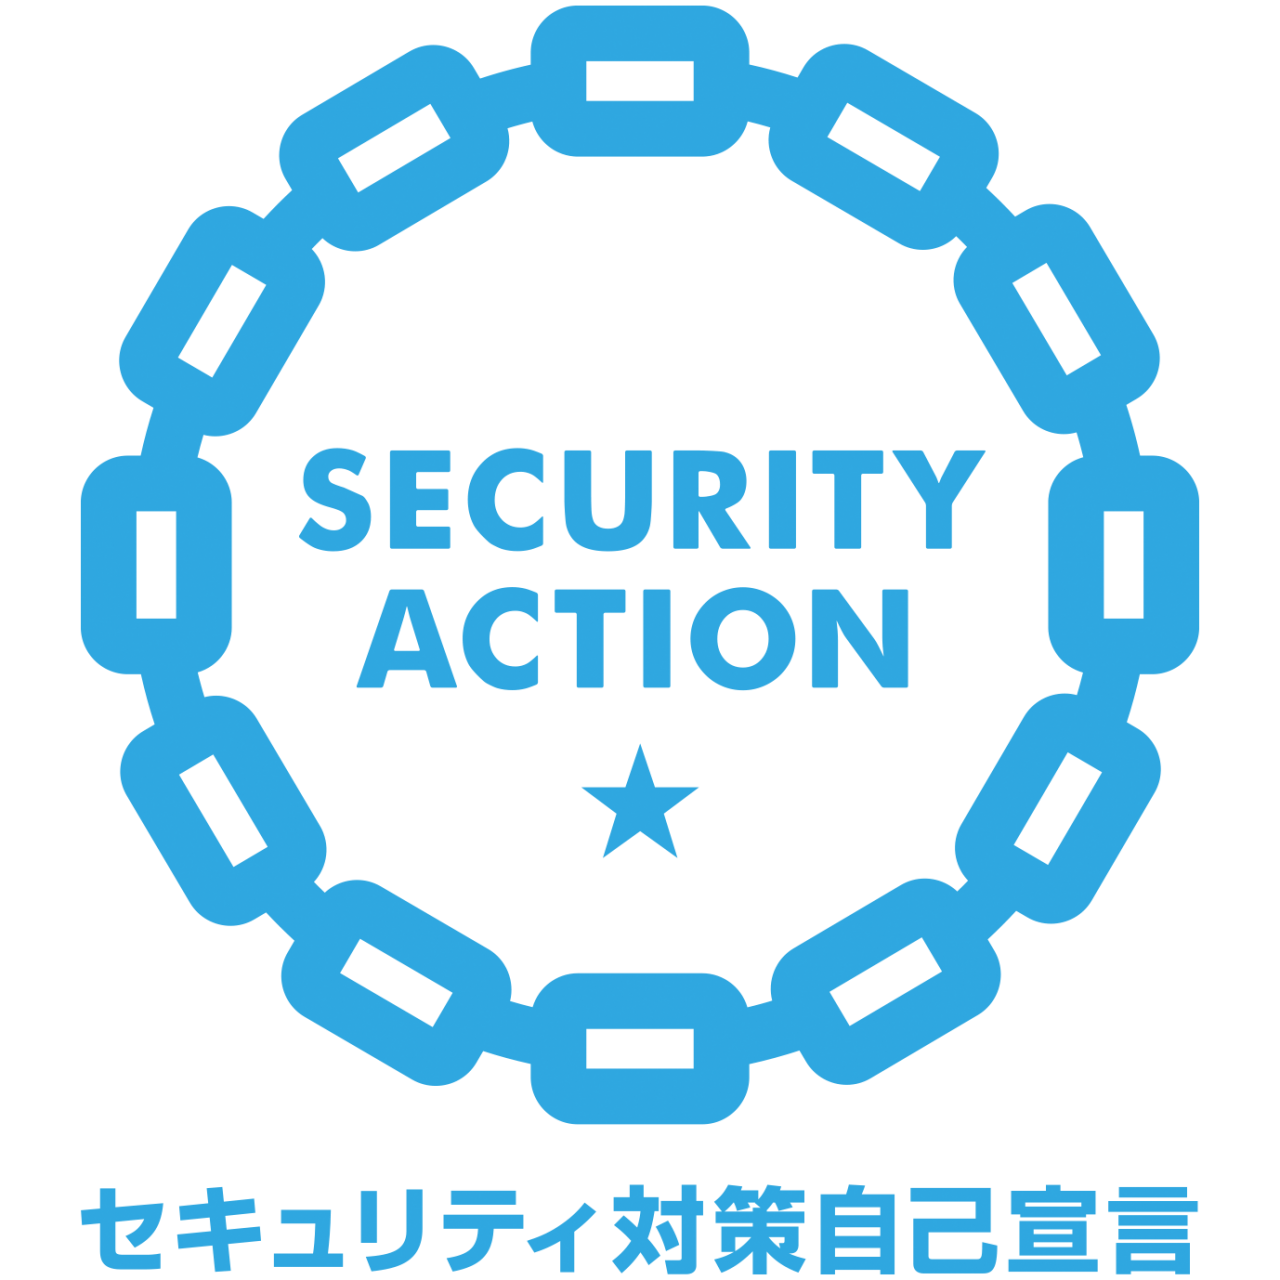 SECURITY ACTION 一つ星ロゴ